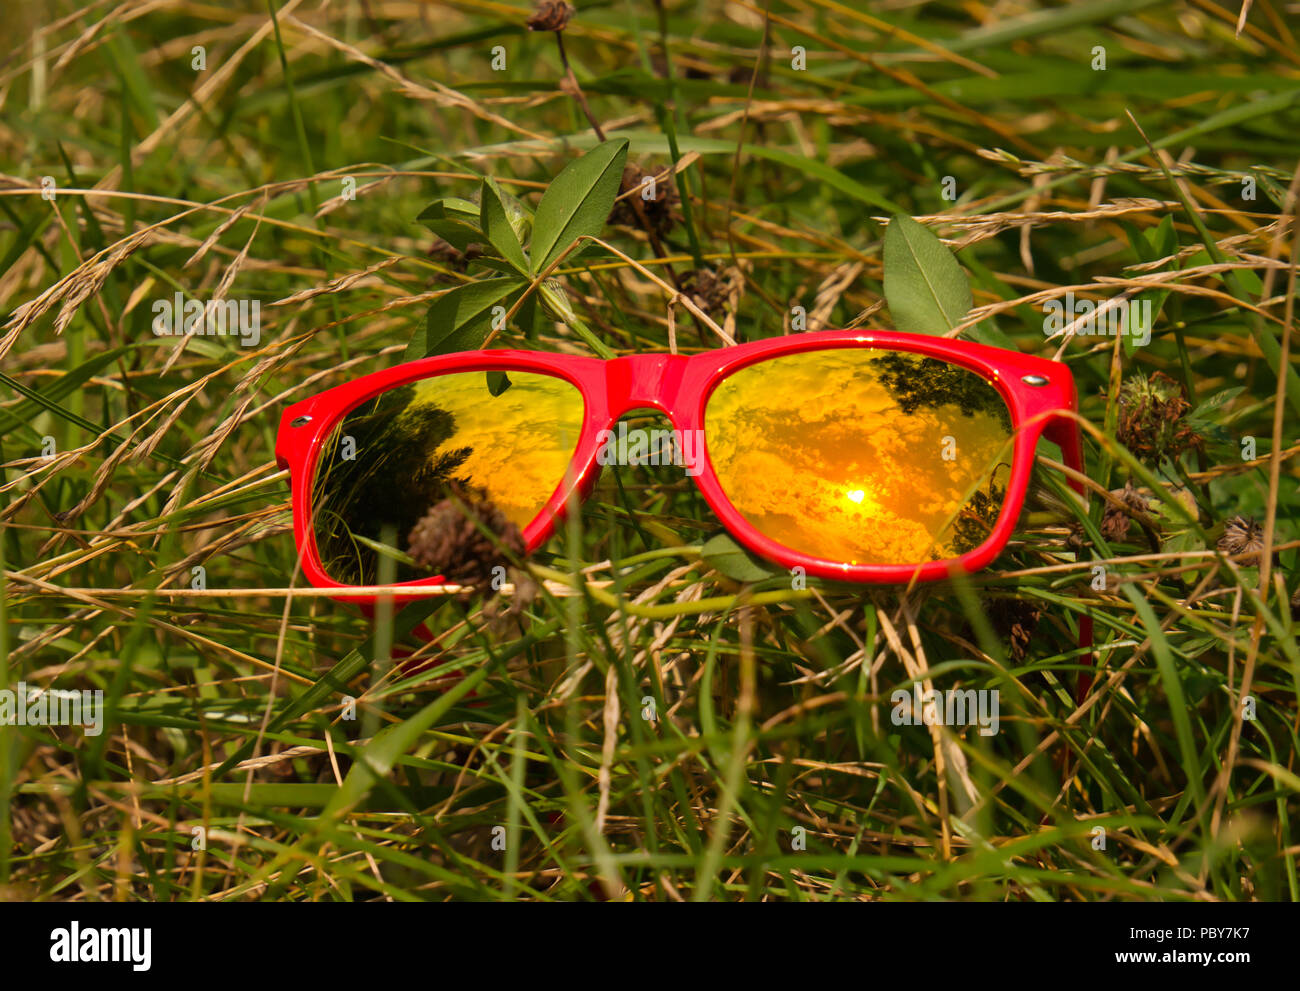 Clouds and sun reflection in glass of sunglasses with red plastic frame on a meadow in the grass - Stock Image